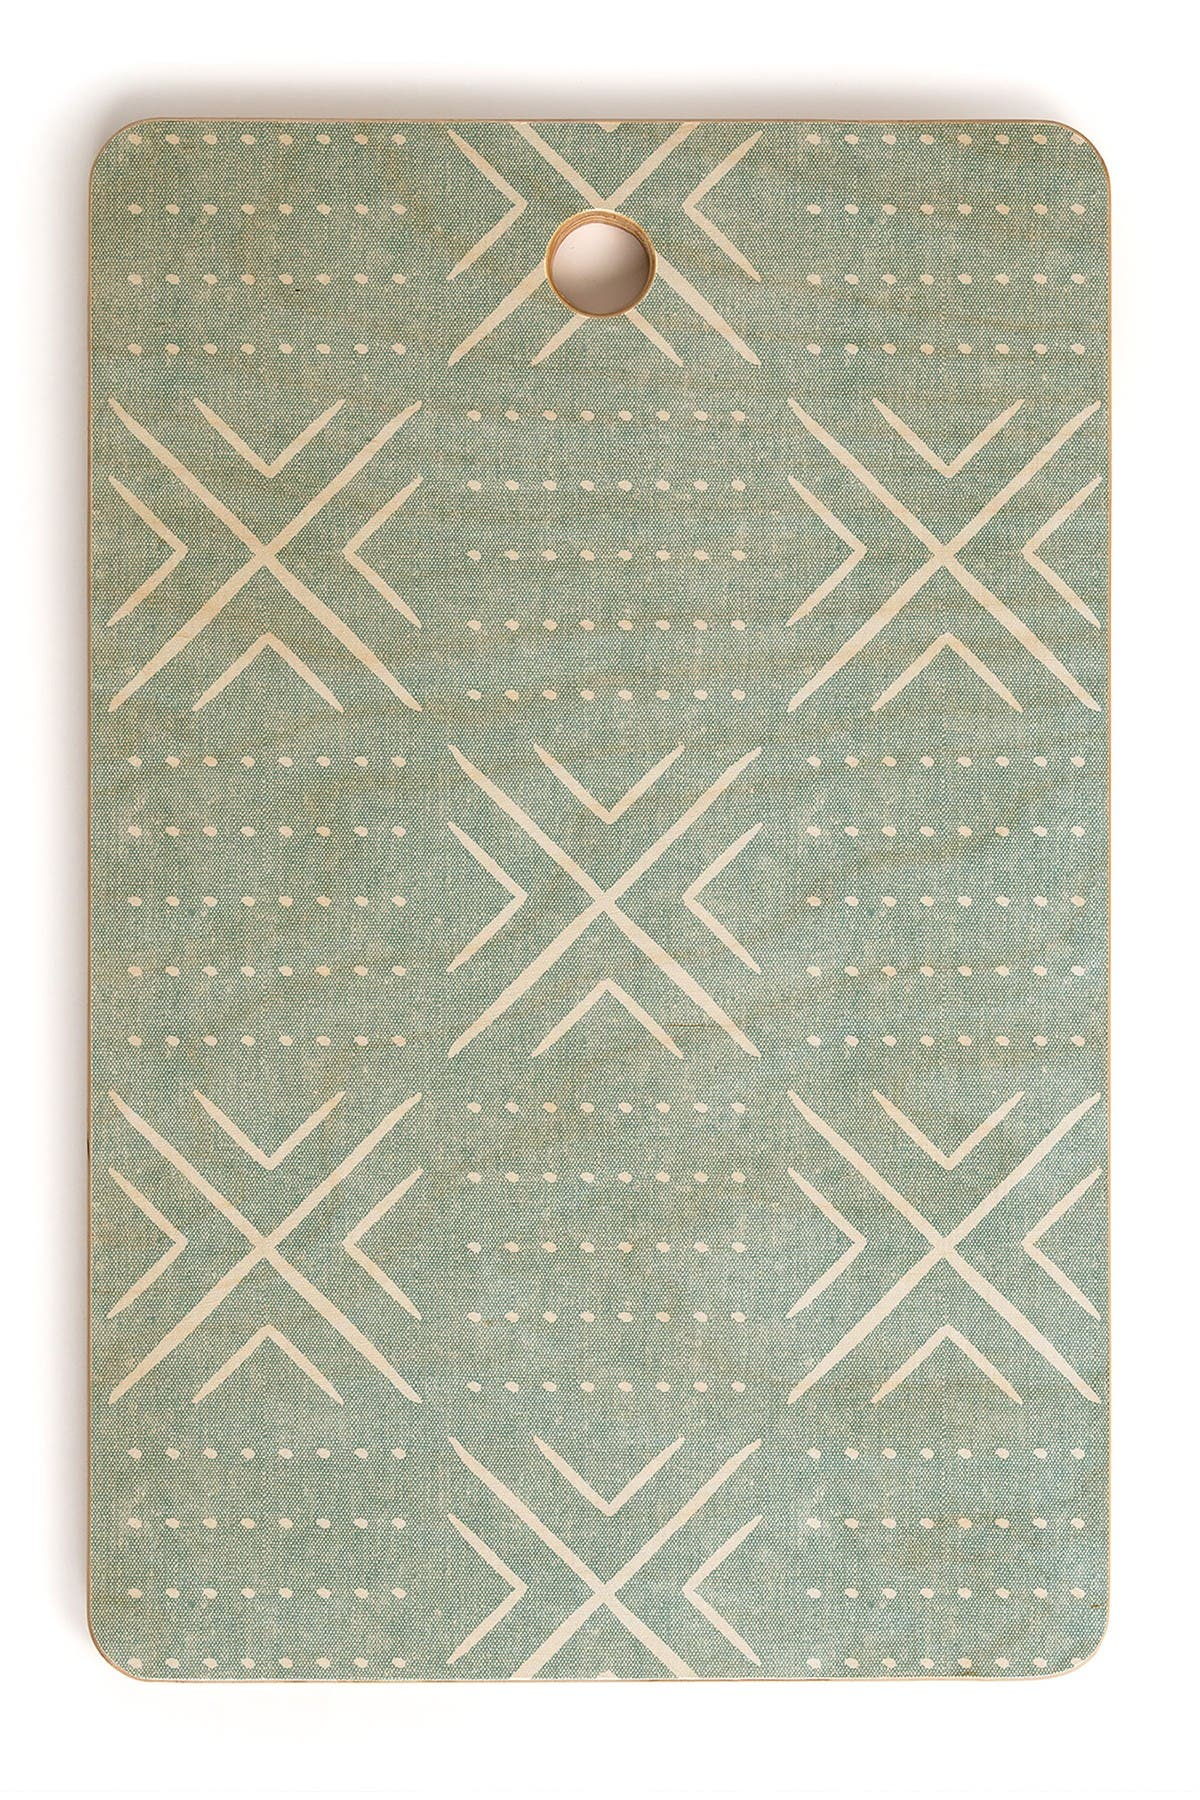 Image of Deny Designs Little Arrow Design Co Mud Cloth Tile Dusty Blue Rectangle Cutting Board